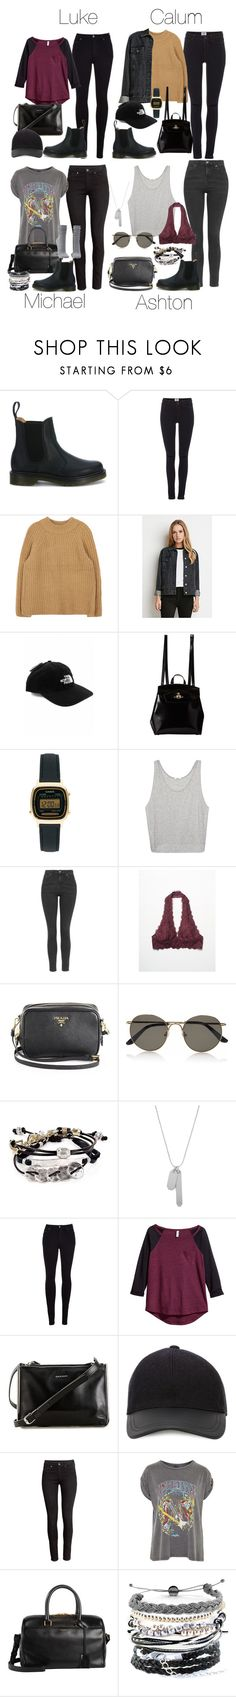 """5SOS Styles: Dr Martens Chelsea Boots"" by fivesecondsofinspiration ❤ liked on Polyvore featuring Dr. Martens, Vero Moda, Forever 21, The North Face, Vivienne Westwood, Casio, Helmut Lang, Topshop, Free People and Prada"